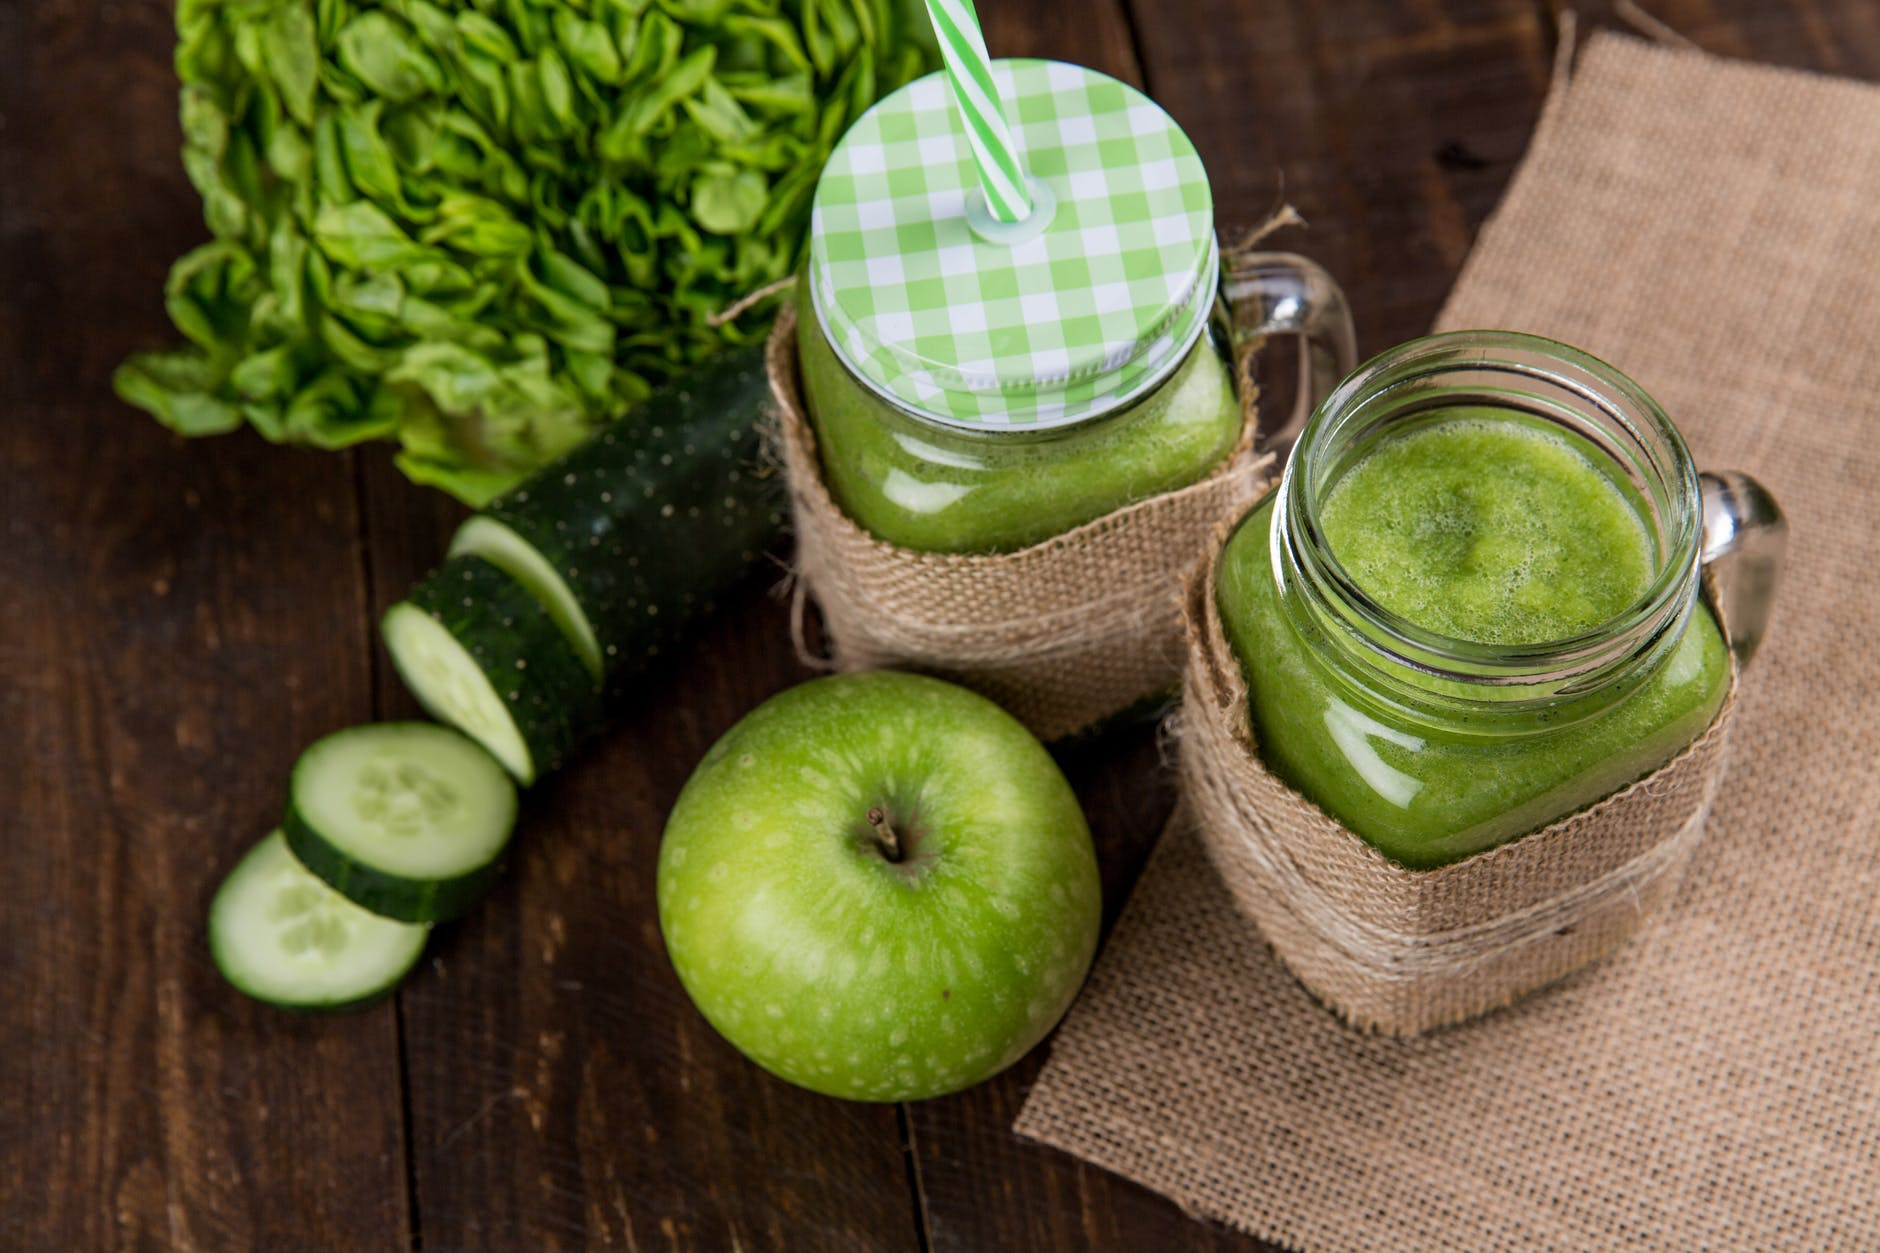 Get Your Skin Glowing With The 14-day Juice Cleanse Challenge